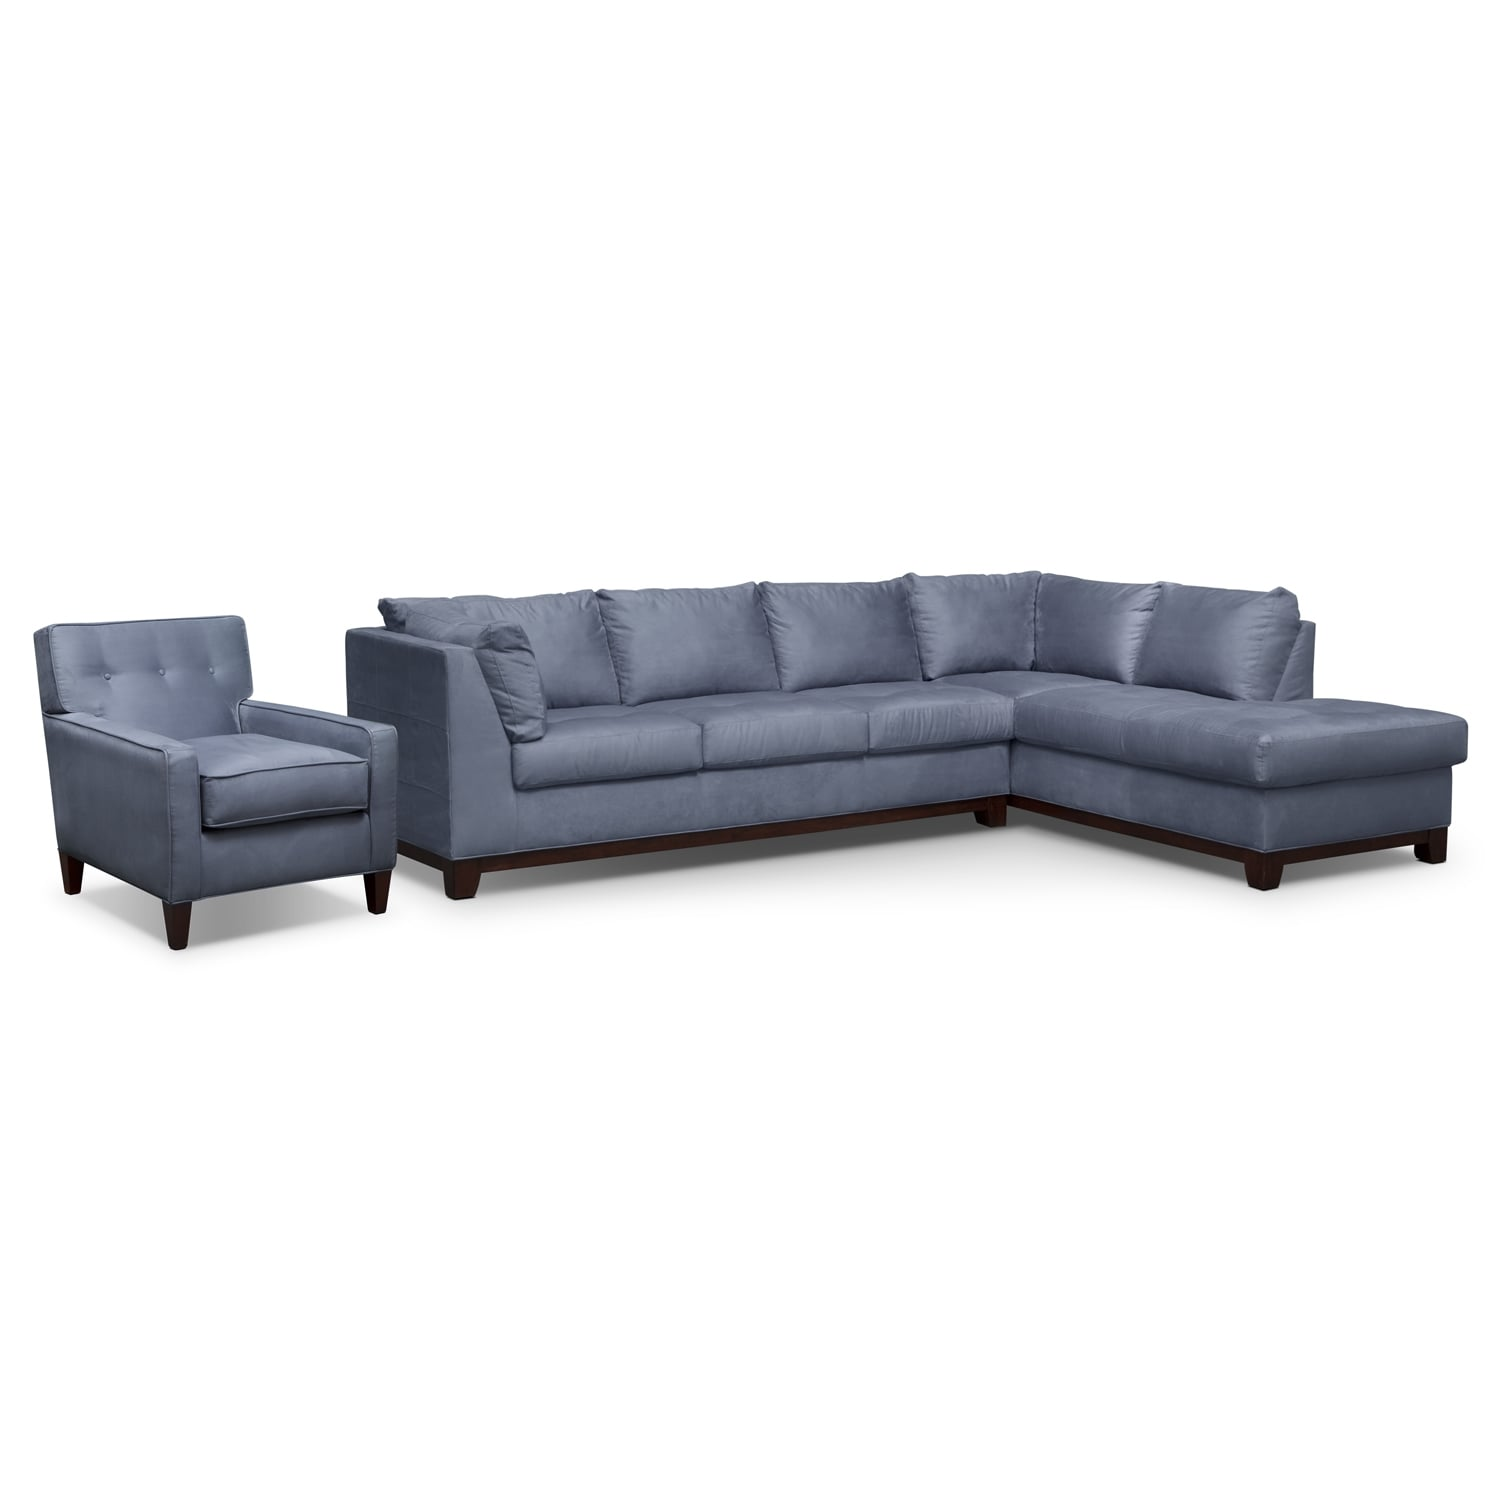 Living Room Furniture - Soho 2-Piece Sectional with Right-Facing Chaise and Chair - Steel